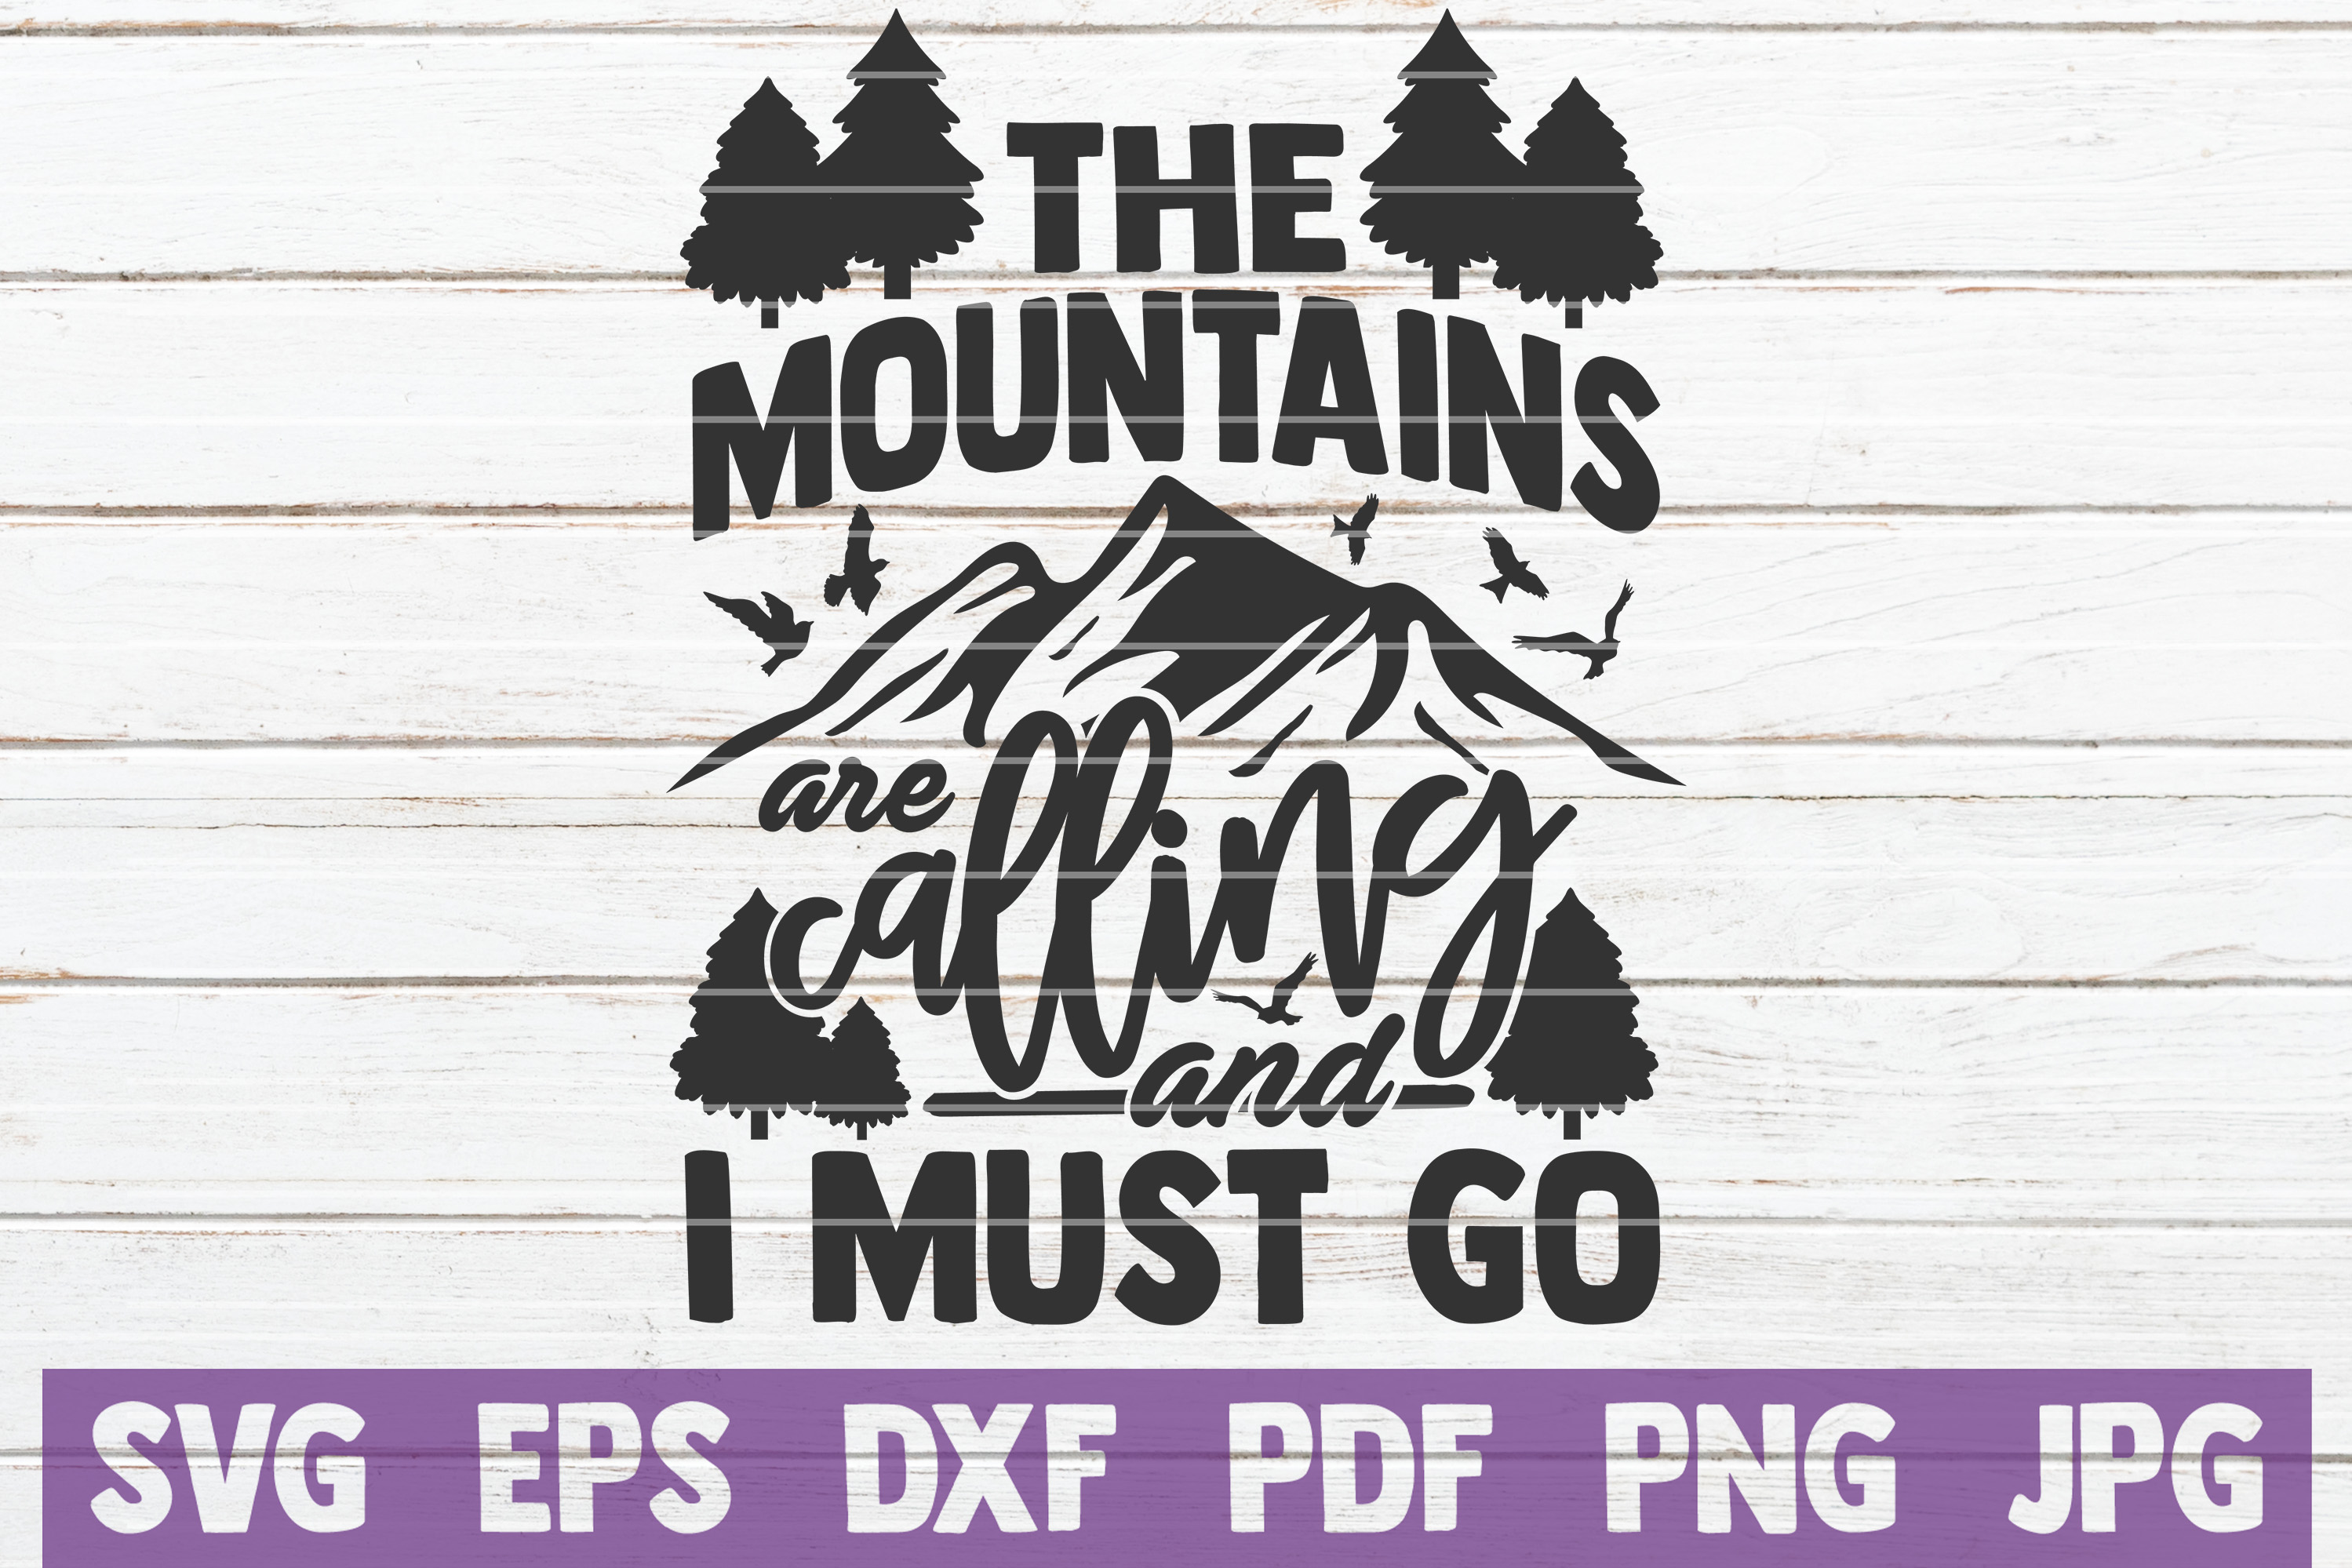 Download Free The Mountains Are Calling And I Must Go Graphic By for Cricut Explore, Silhouette and other cutting machines.